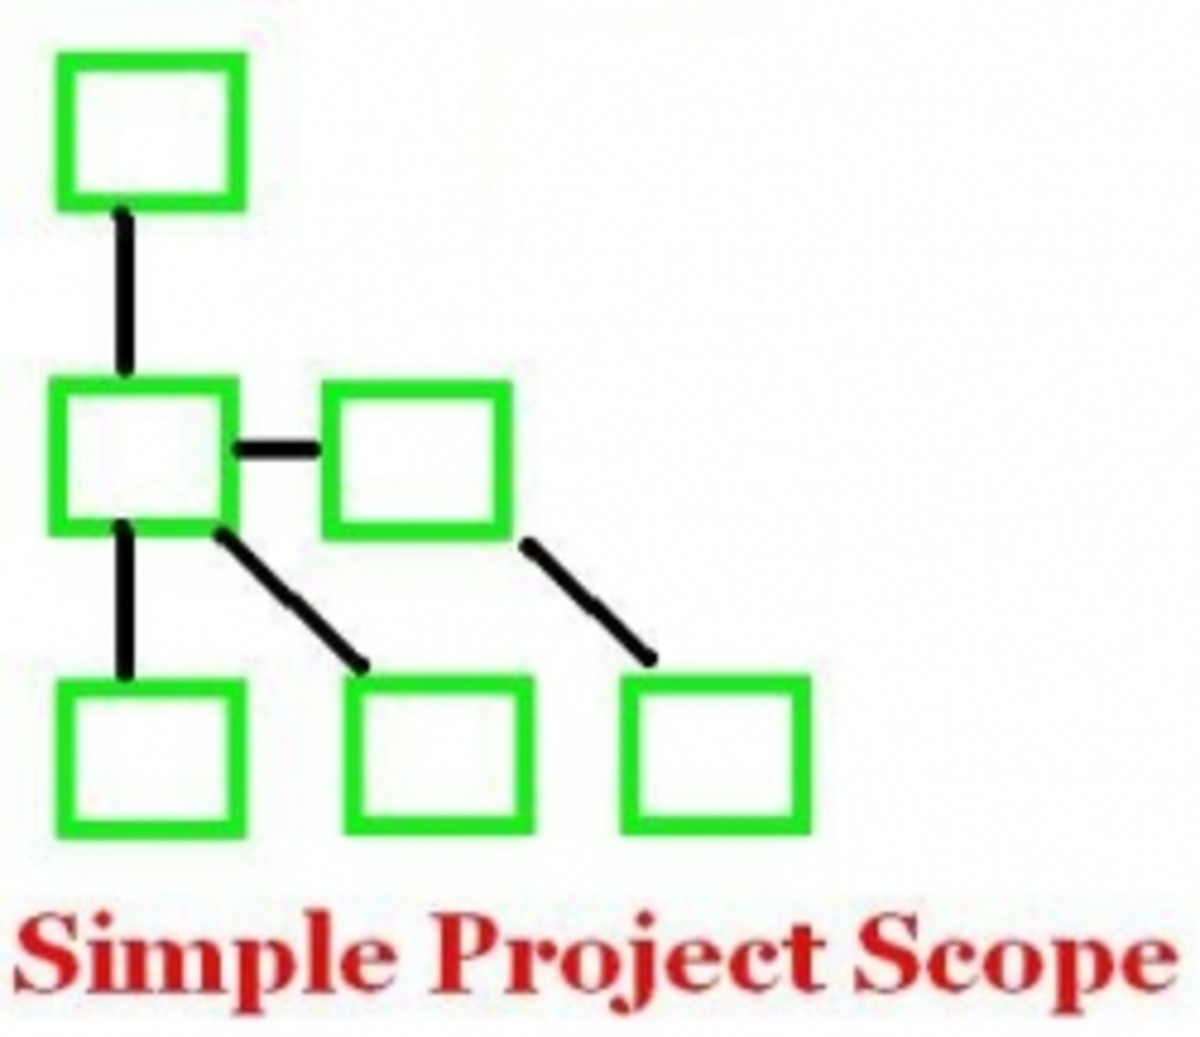 Simple Project Management Scope